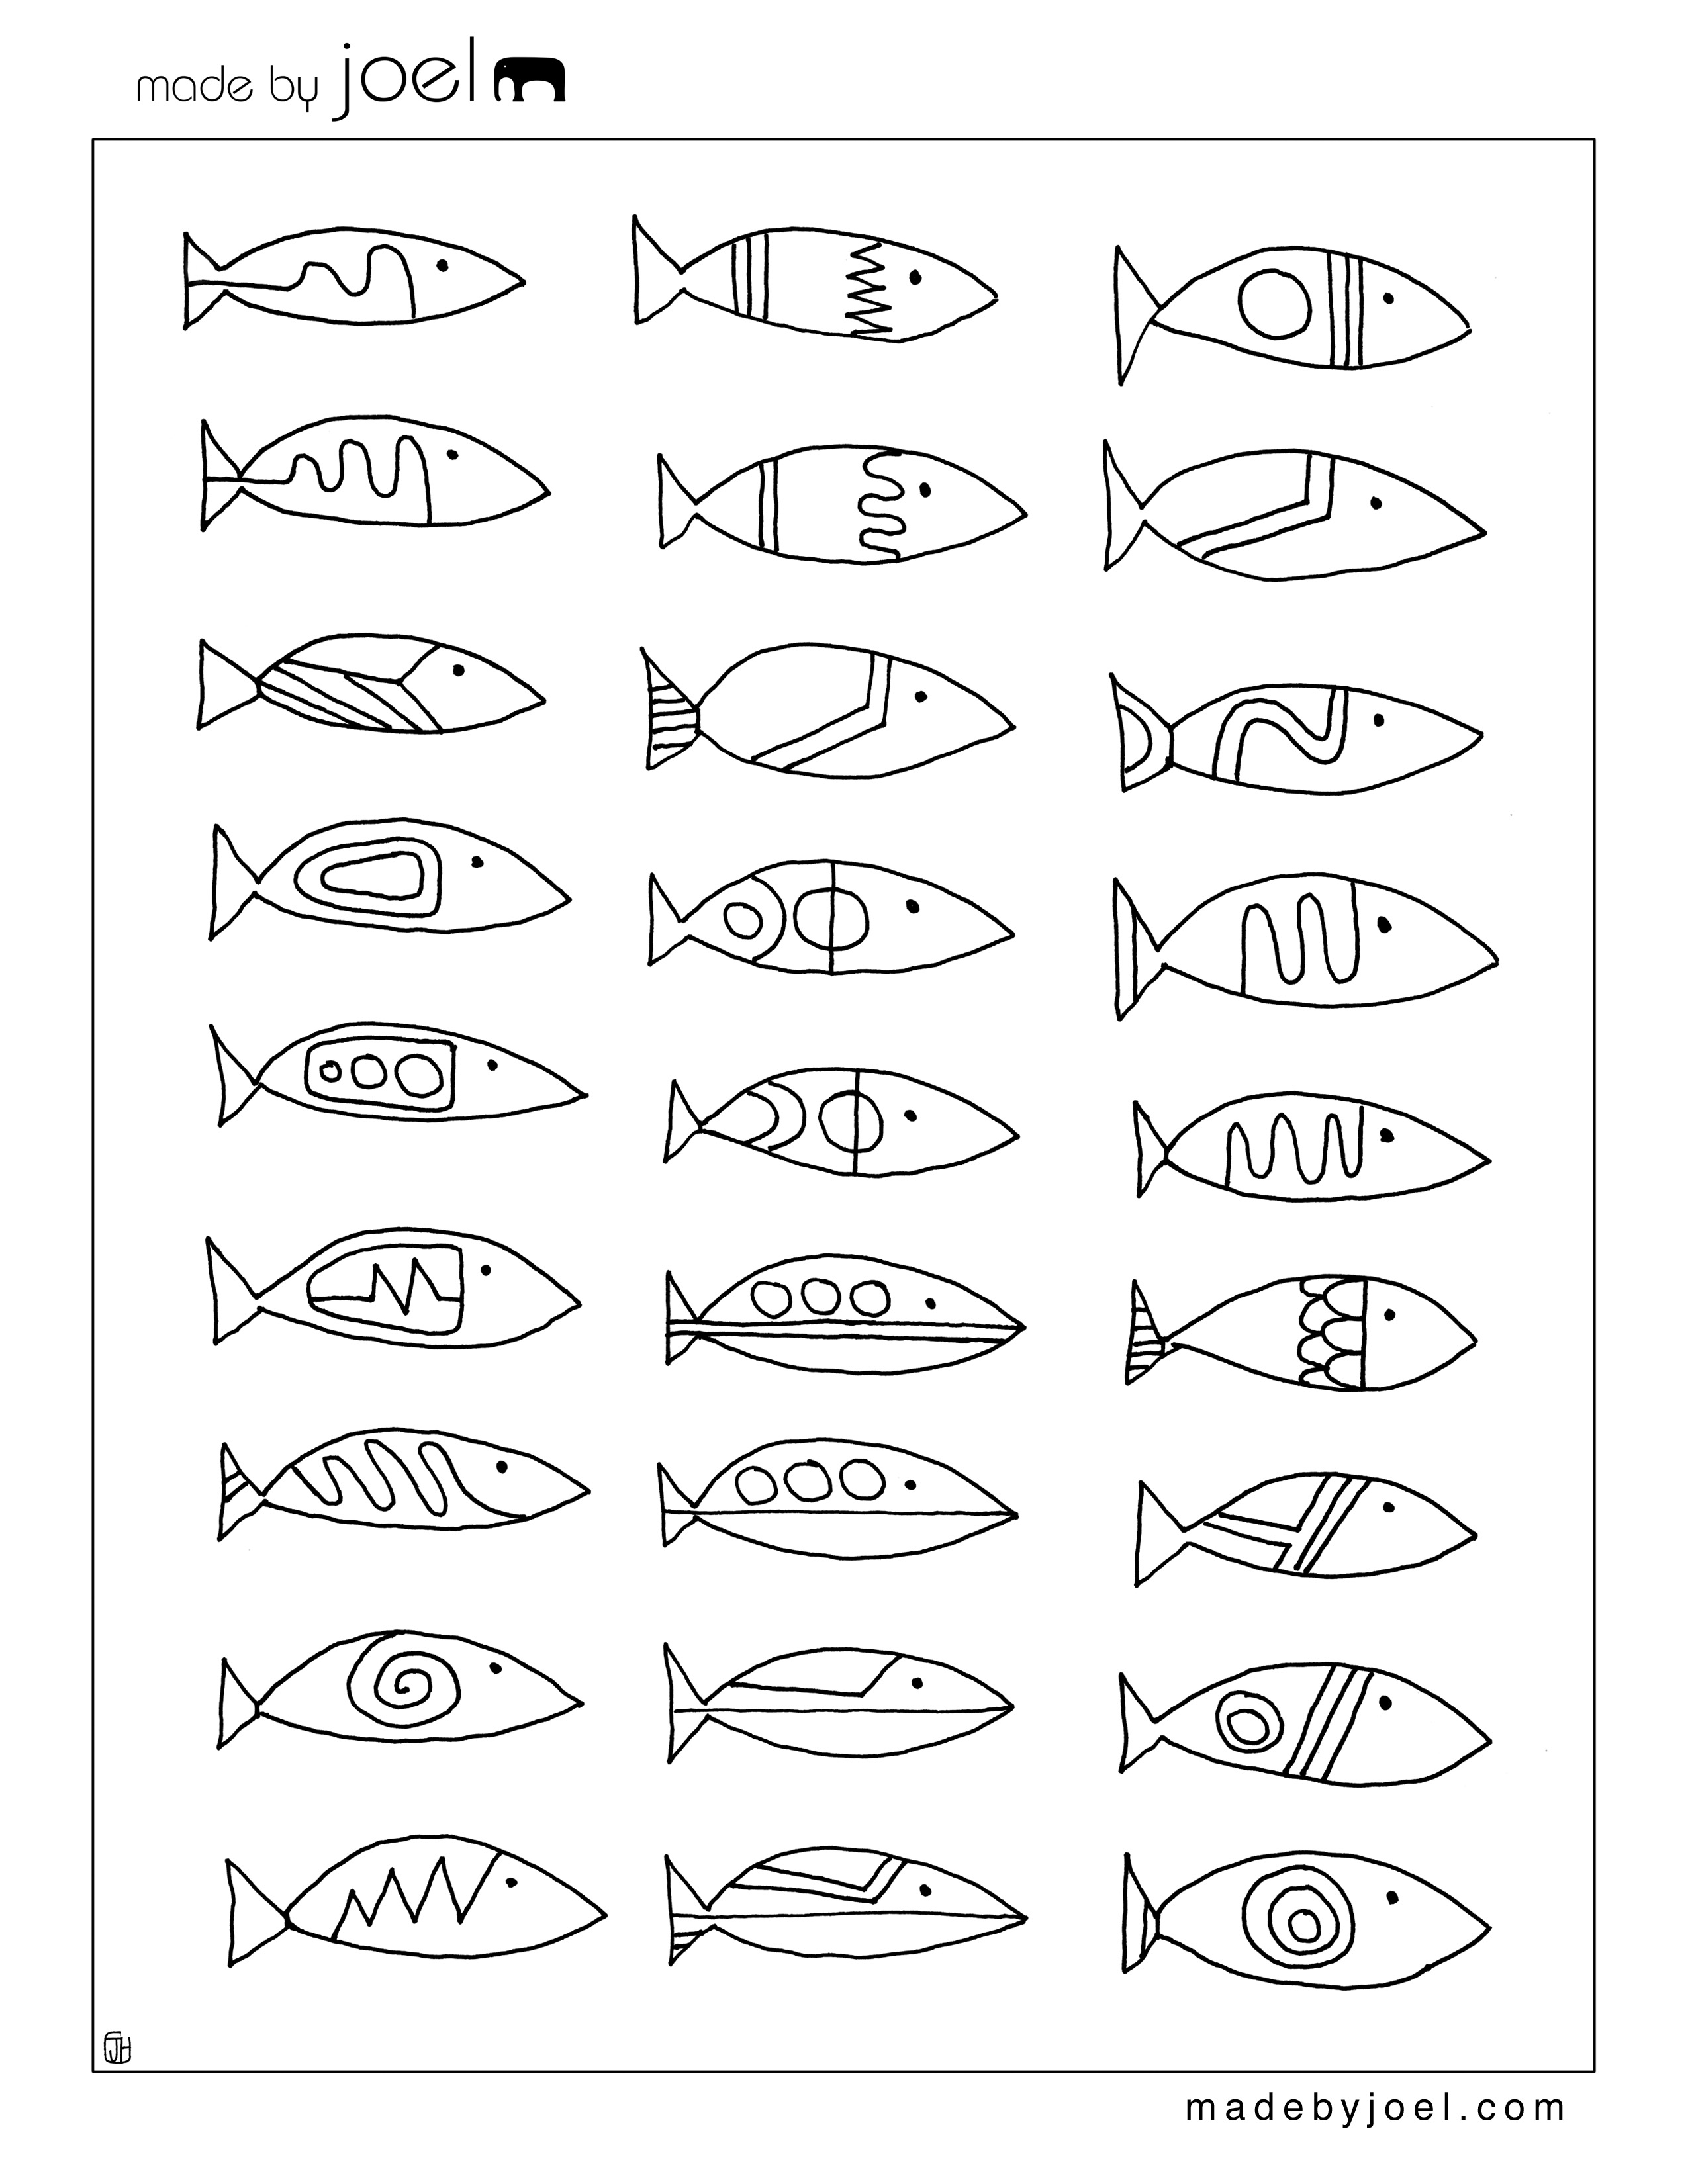 Made By Joel Made By Joel Modern Fish Designs Coloring